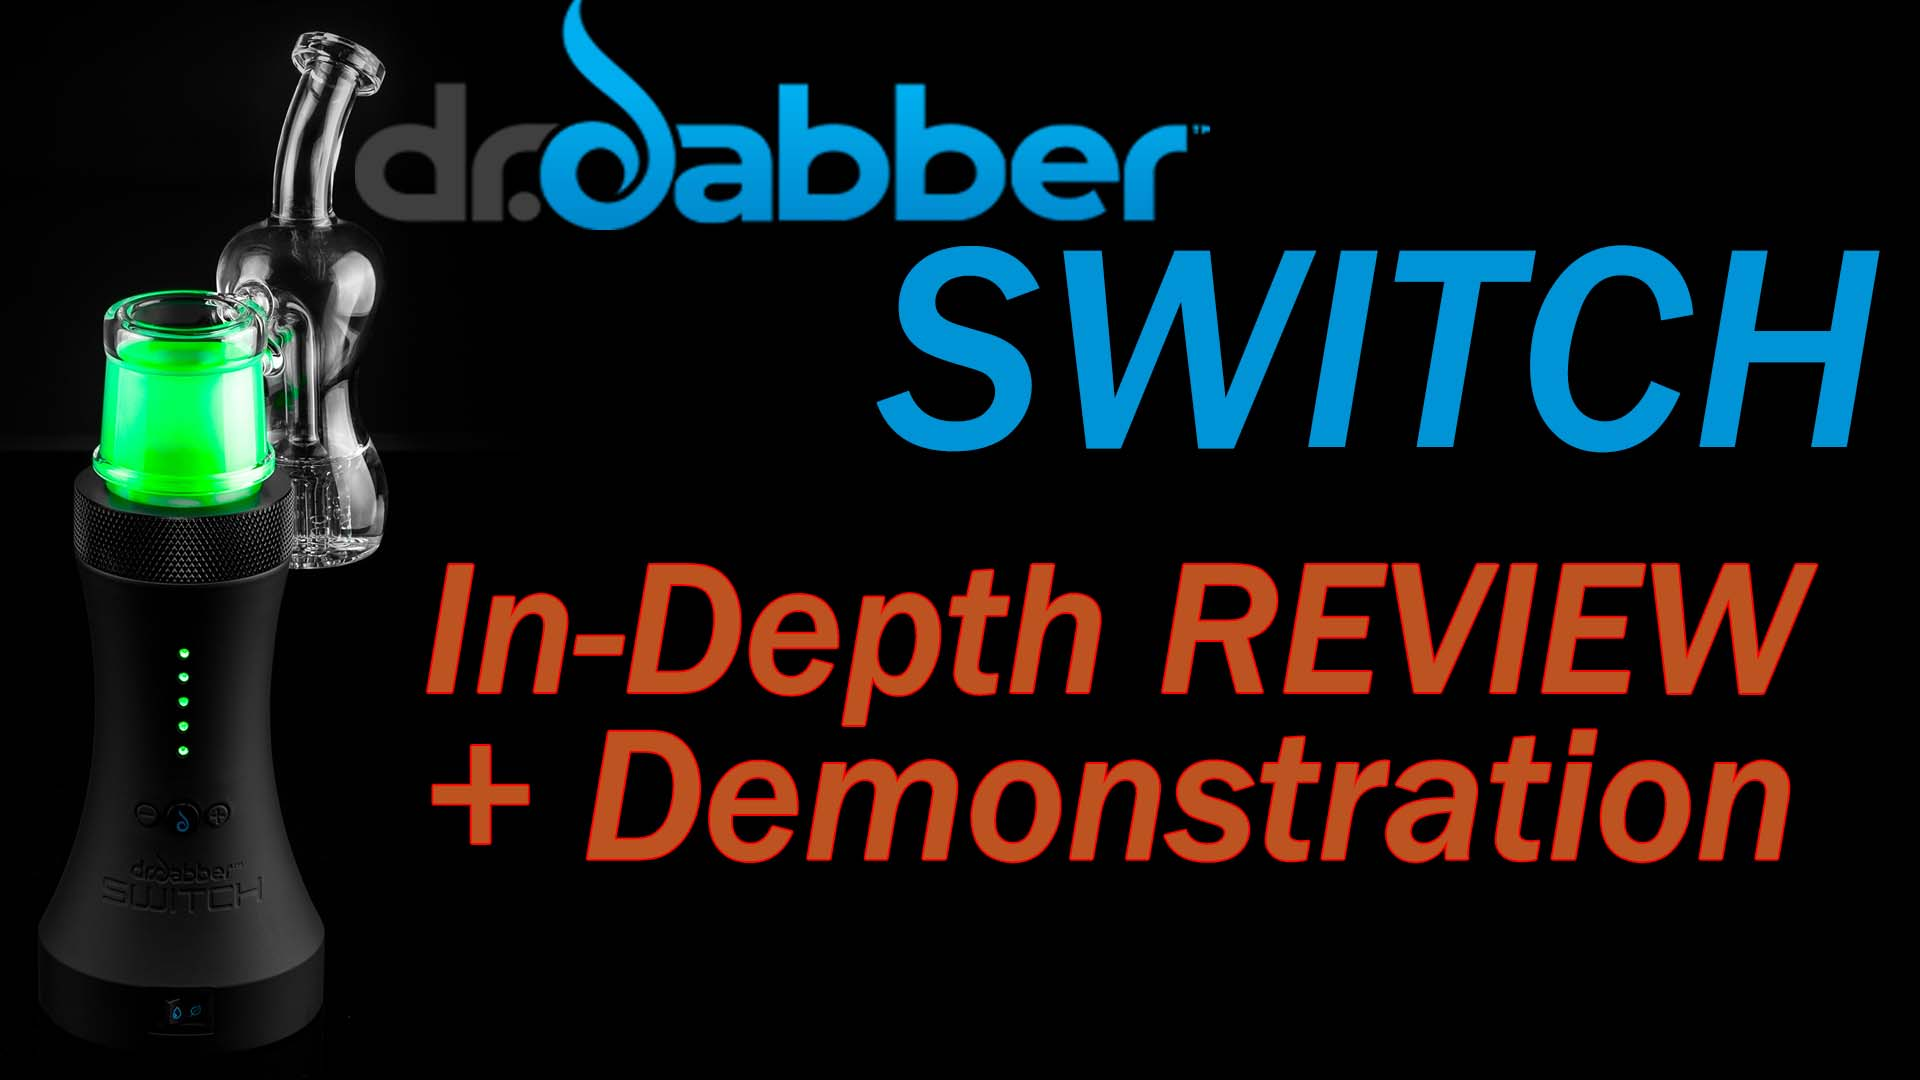 Dr. Dabber Switch Review – Portable Induction Dab Rig